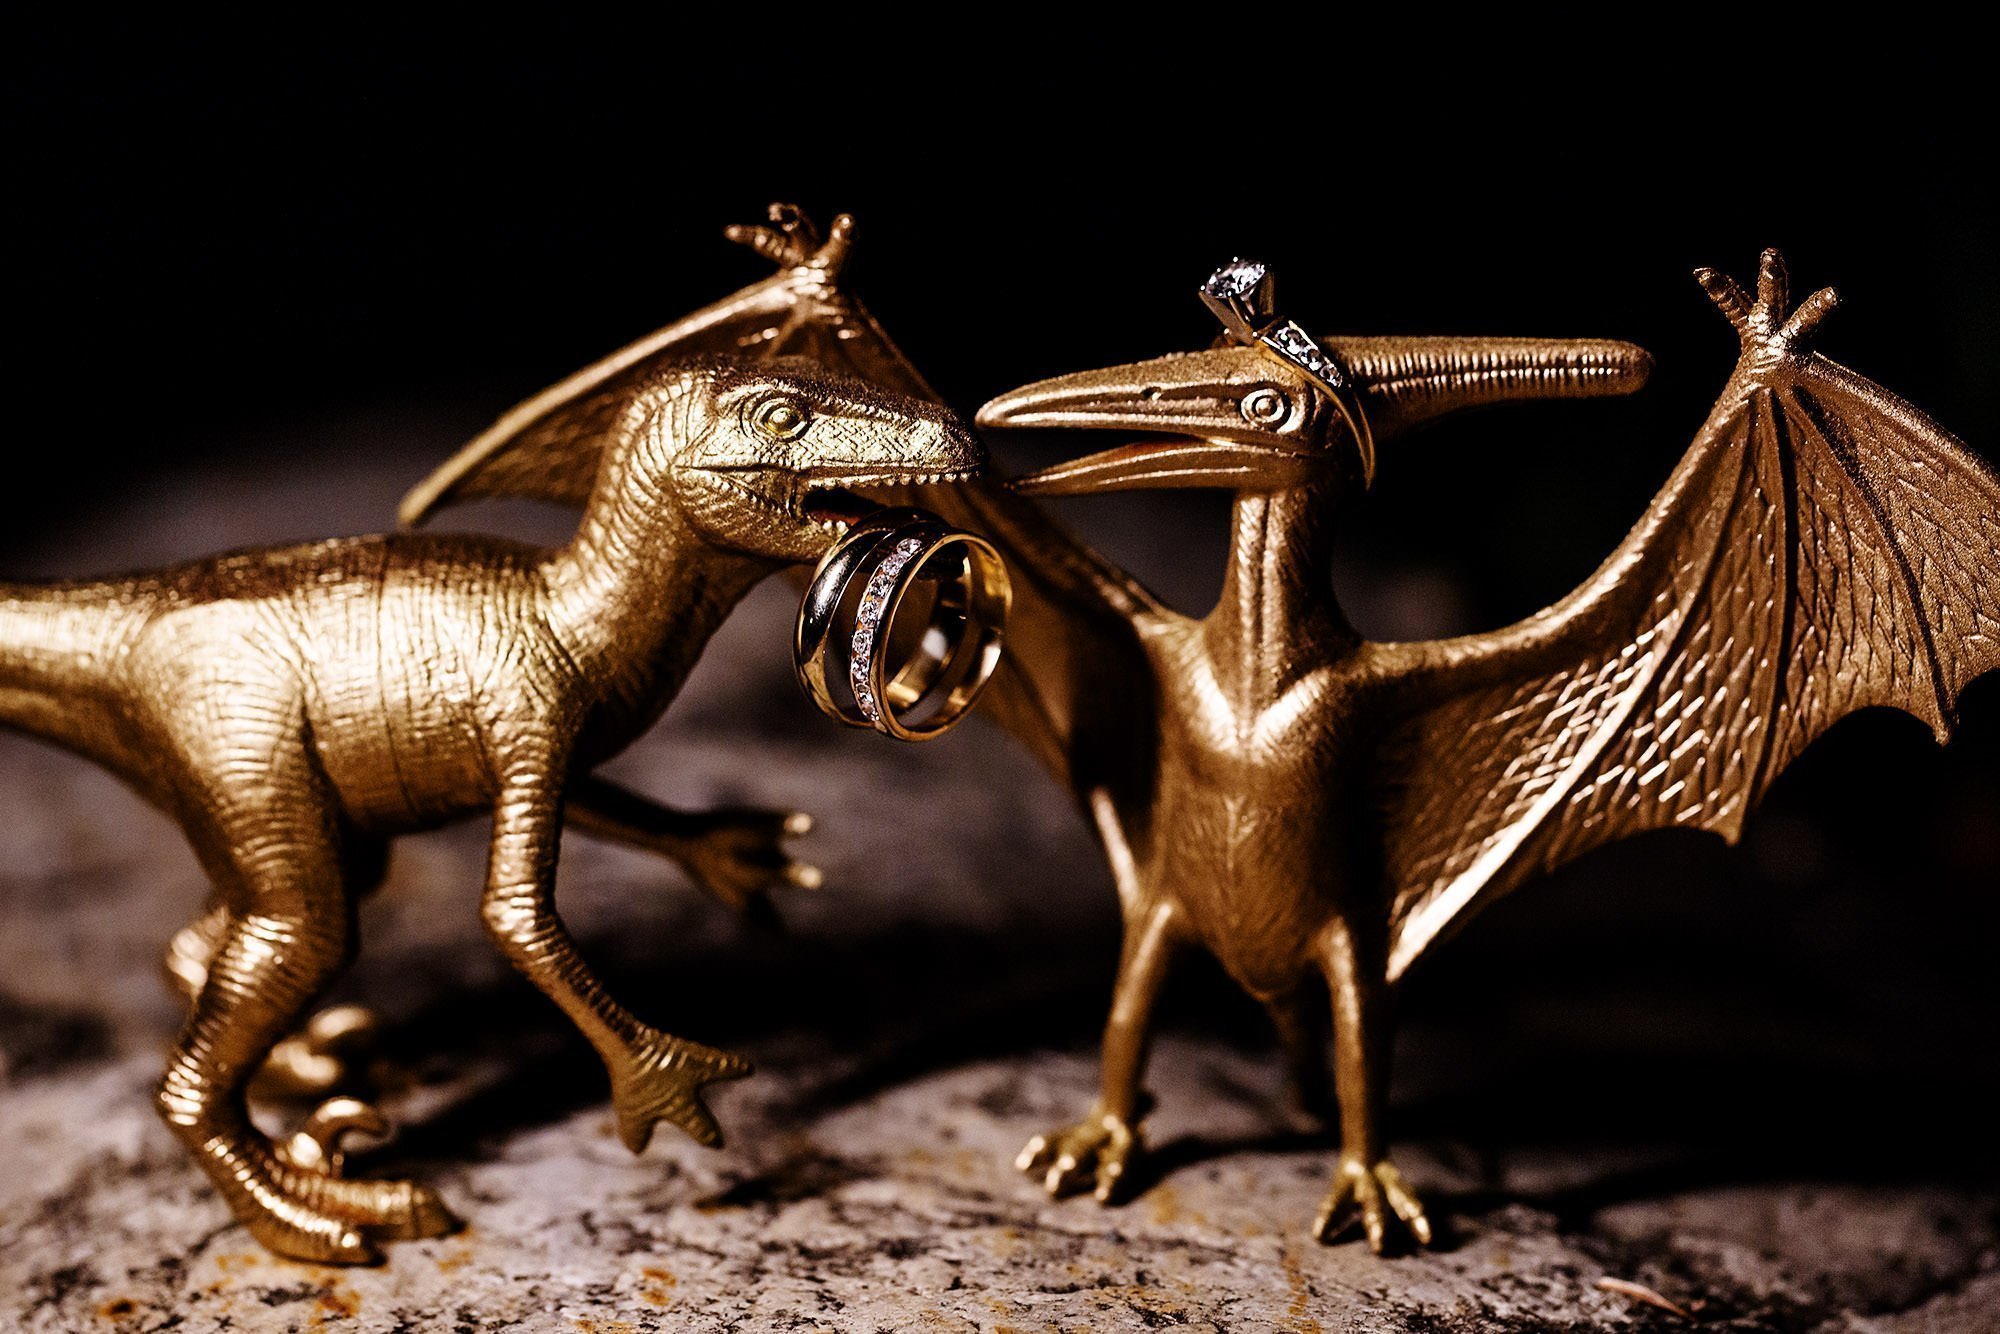 Shelburne Museum Wedding  I  A detail of the couples' rings with dinosaur figurines.